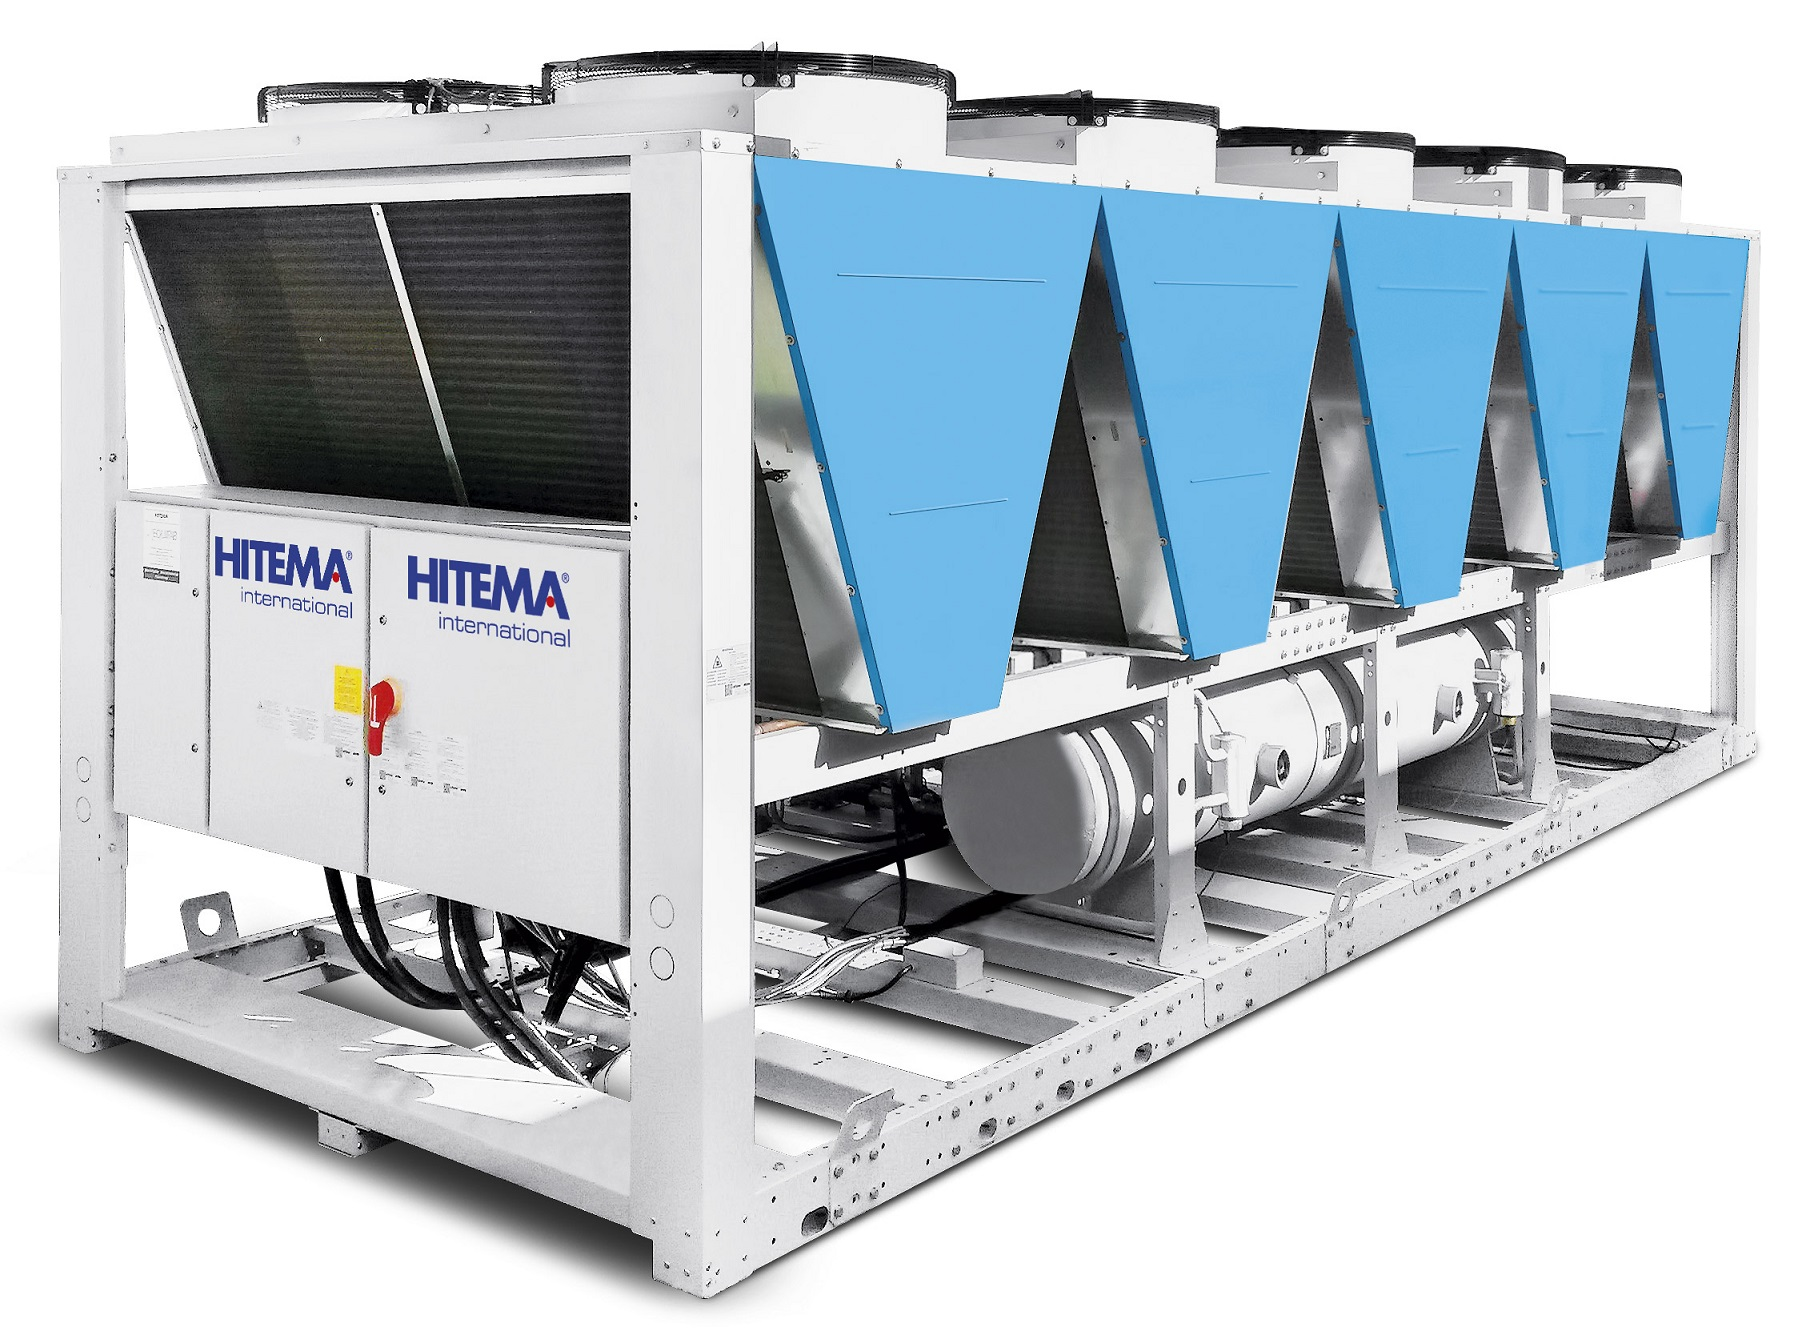 Hitema - Model TFV Series - Air-Cooled Liquid Chillers Cooling Capacity Range 250kW - 1215kW for Wineries, Agriculture & Farming & More